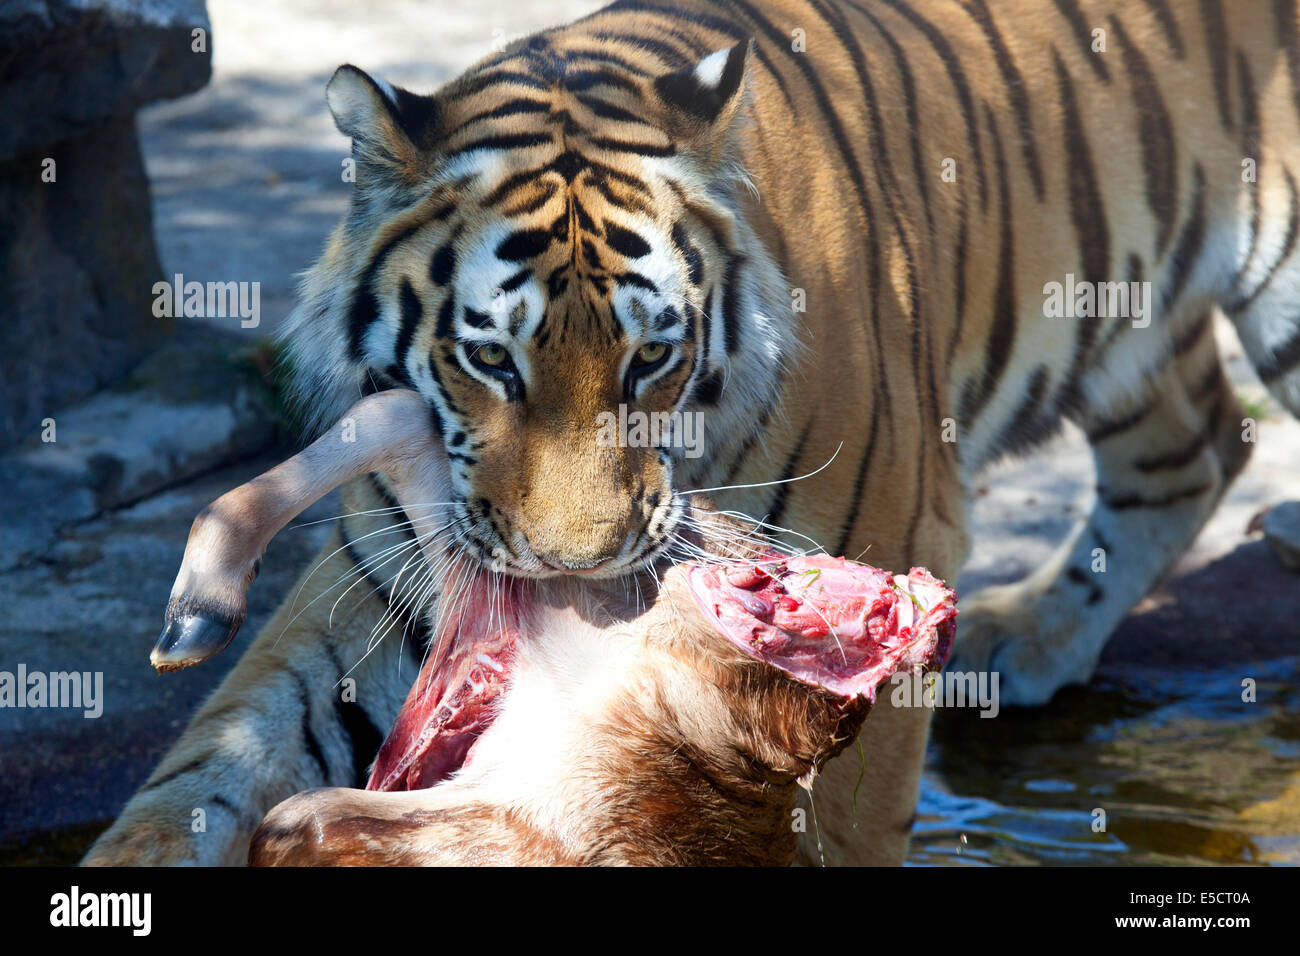 A Siberian Tiger with animal carcass in mouth - Stock Image